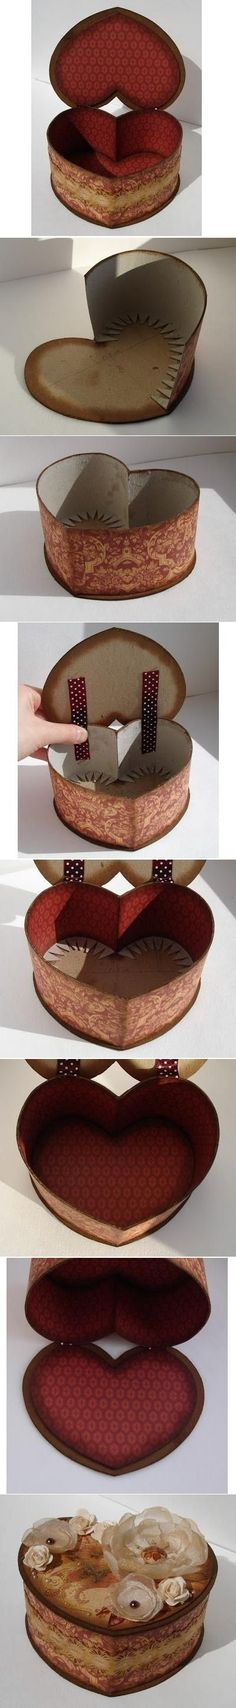 DIY Cardboard Heart Shaped Box DIY Cardboard Heart Shaped Box and Instructions!!! Diy Project :) DIY tutorial !! by isabelle07